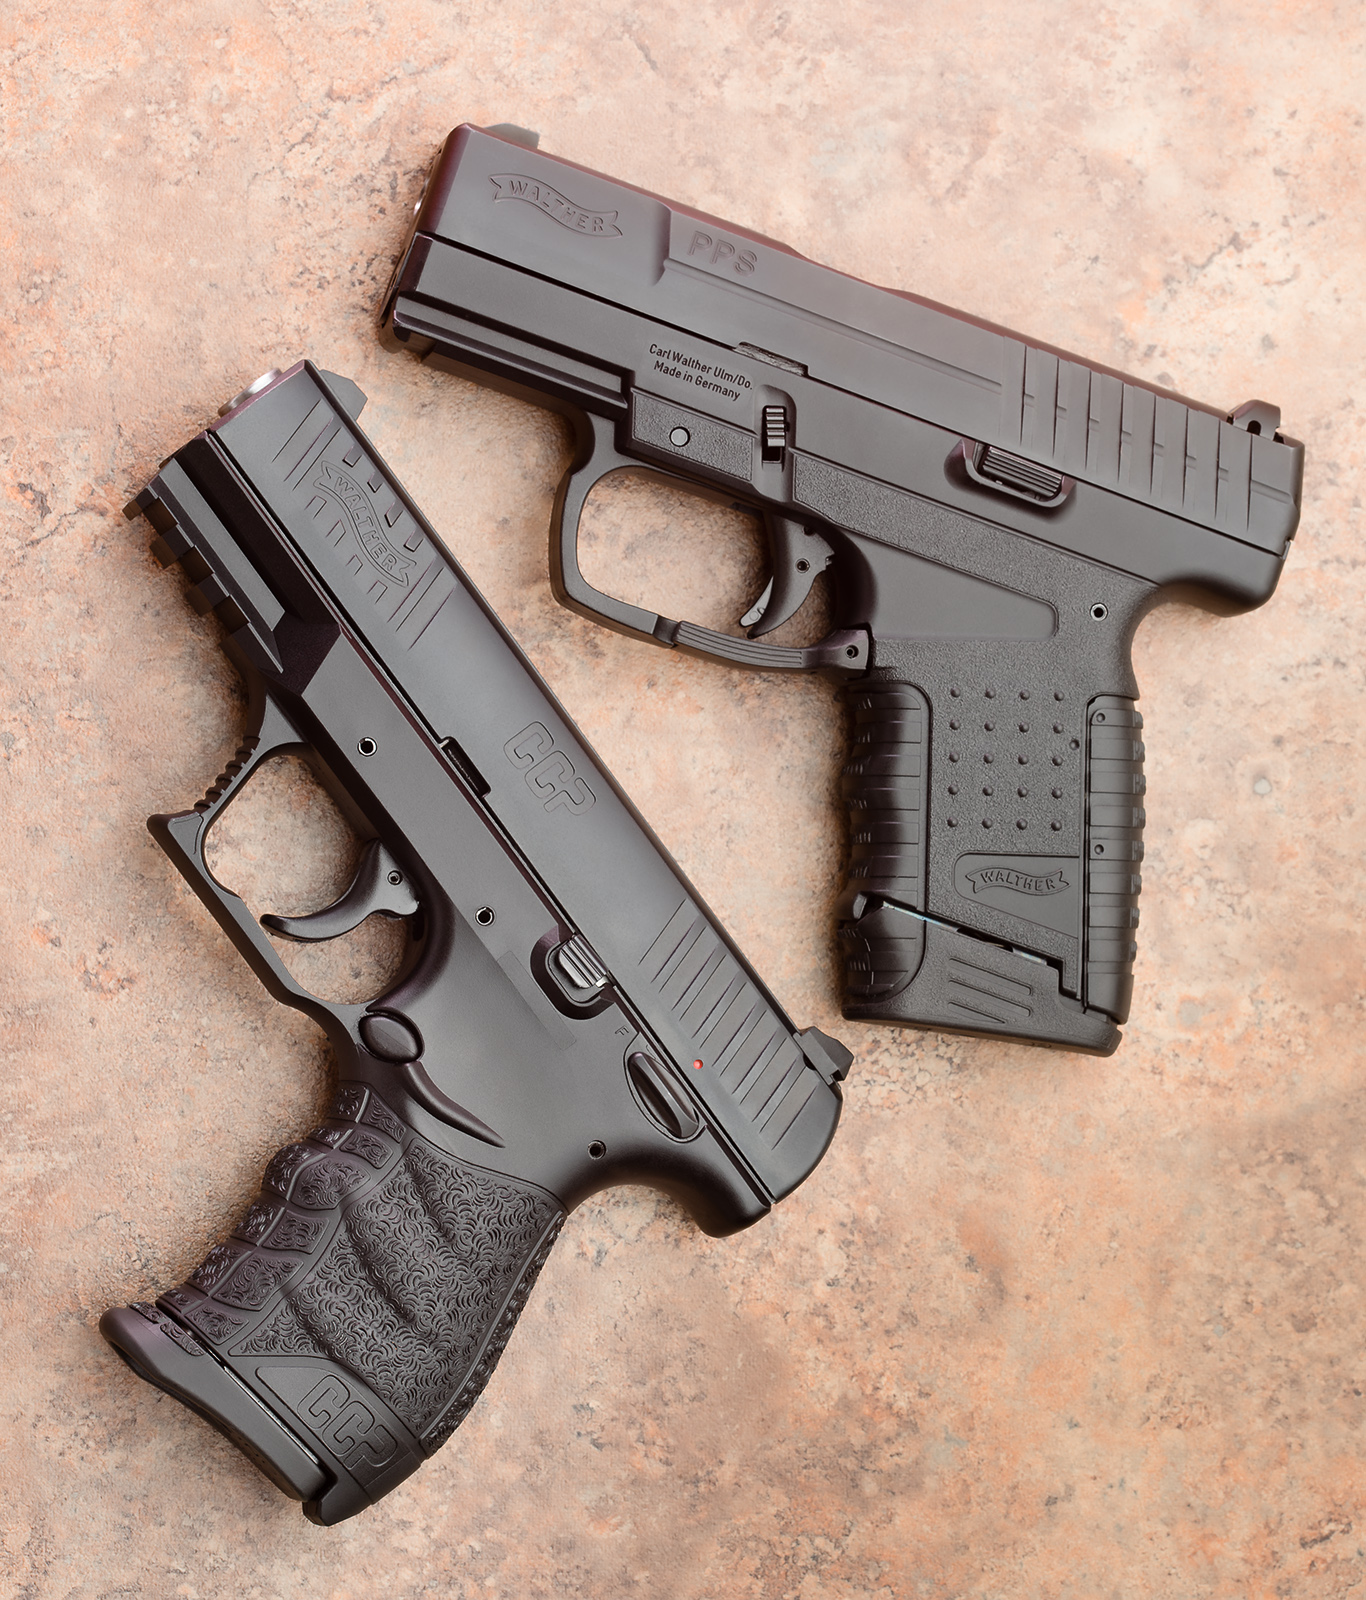 Walther CCP vs PPS: Same Goal, Different Ways to Achieve It